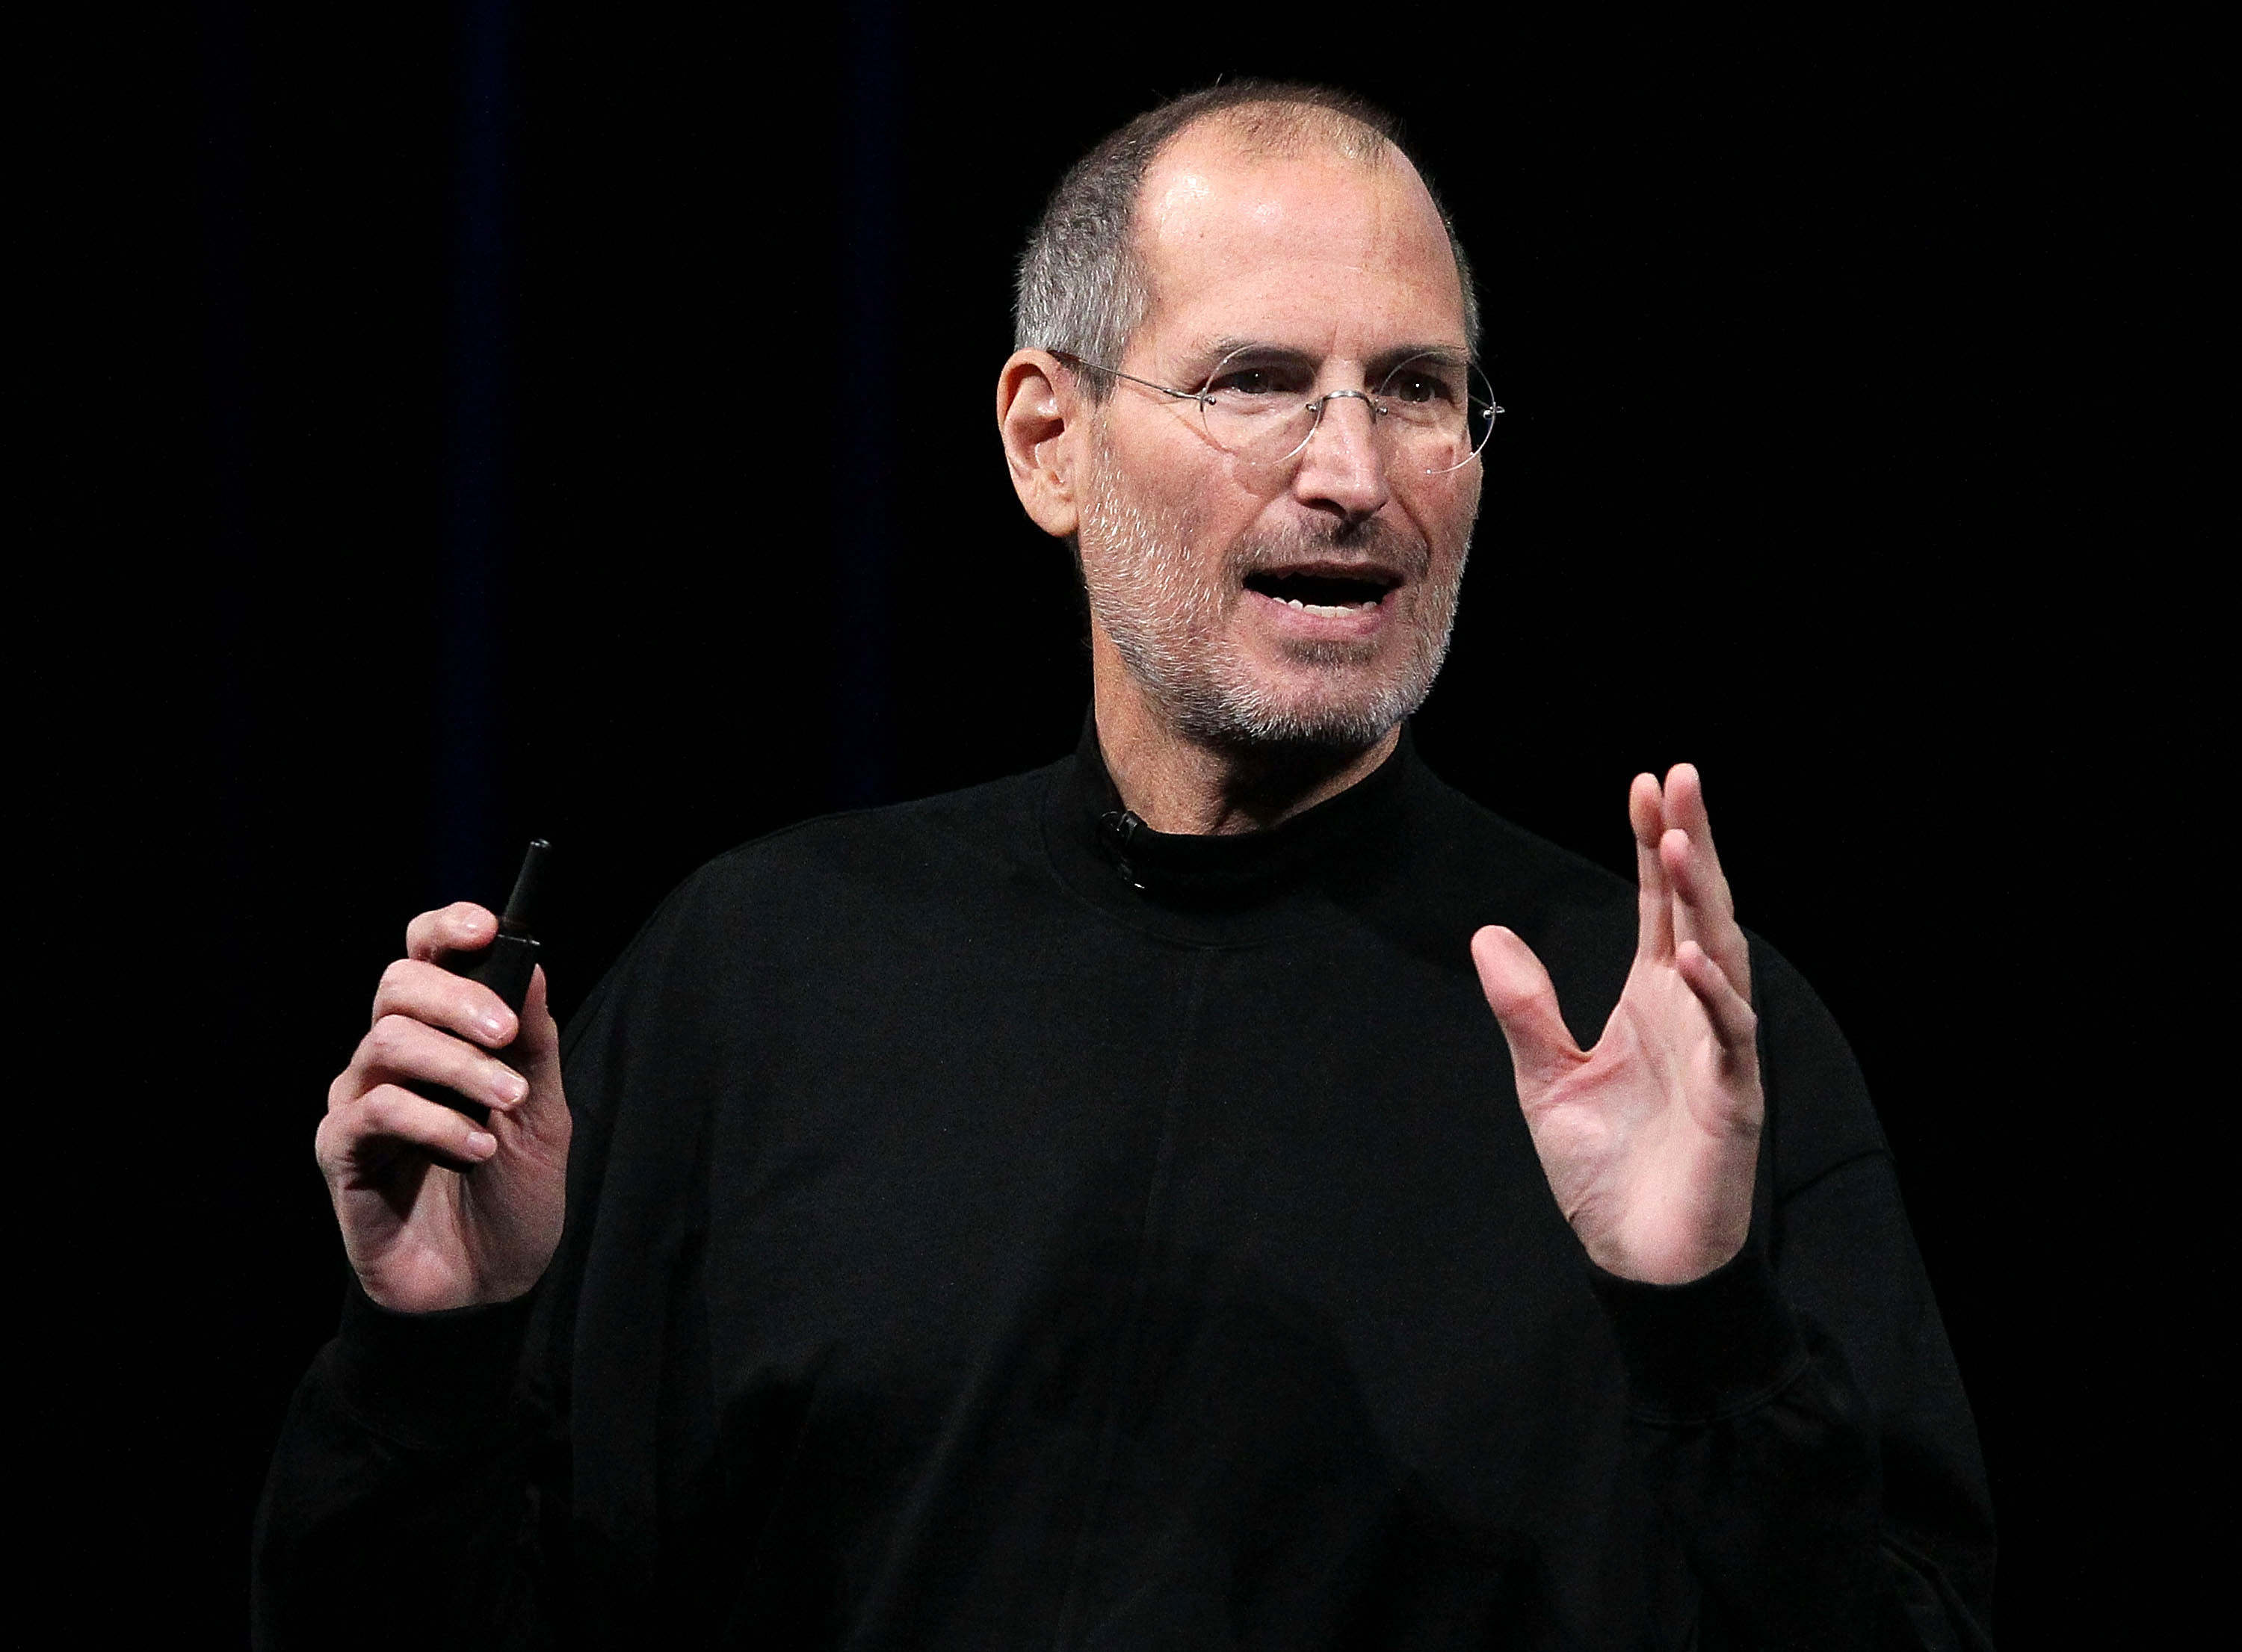 Apple Inc. CEO Steve Jobs announces the new iPad as he speaks during an Apple Special Event at Yerba Buena Center for the Arts January 27, 2010 in San Francisco, California.